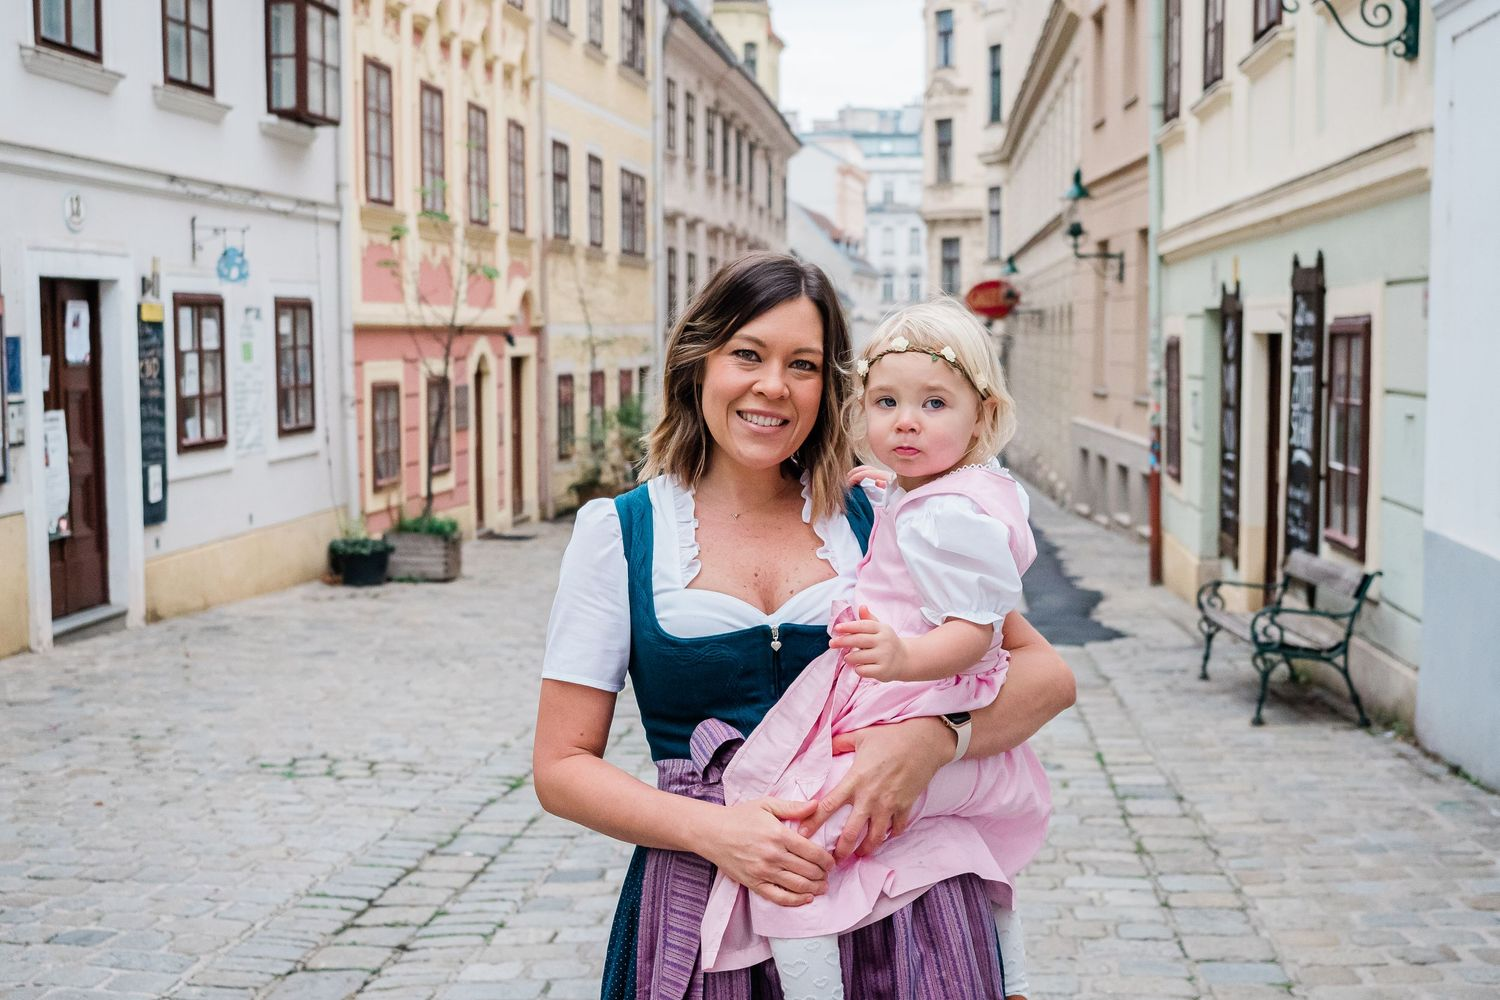 American Mother and daughter photography in Vienna, Austria wearing Dirndl